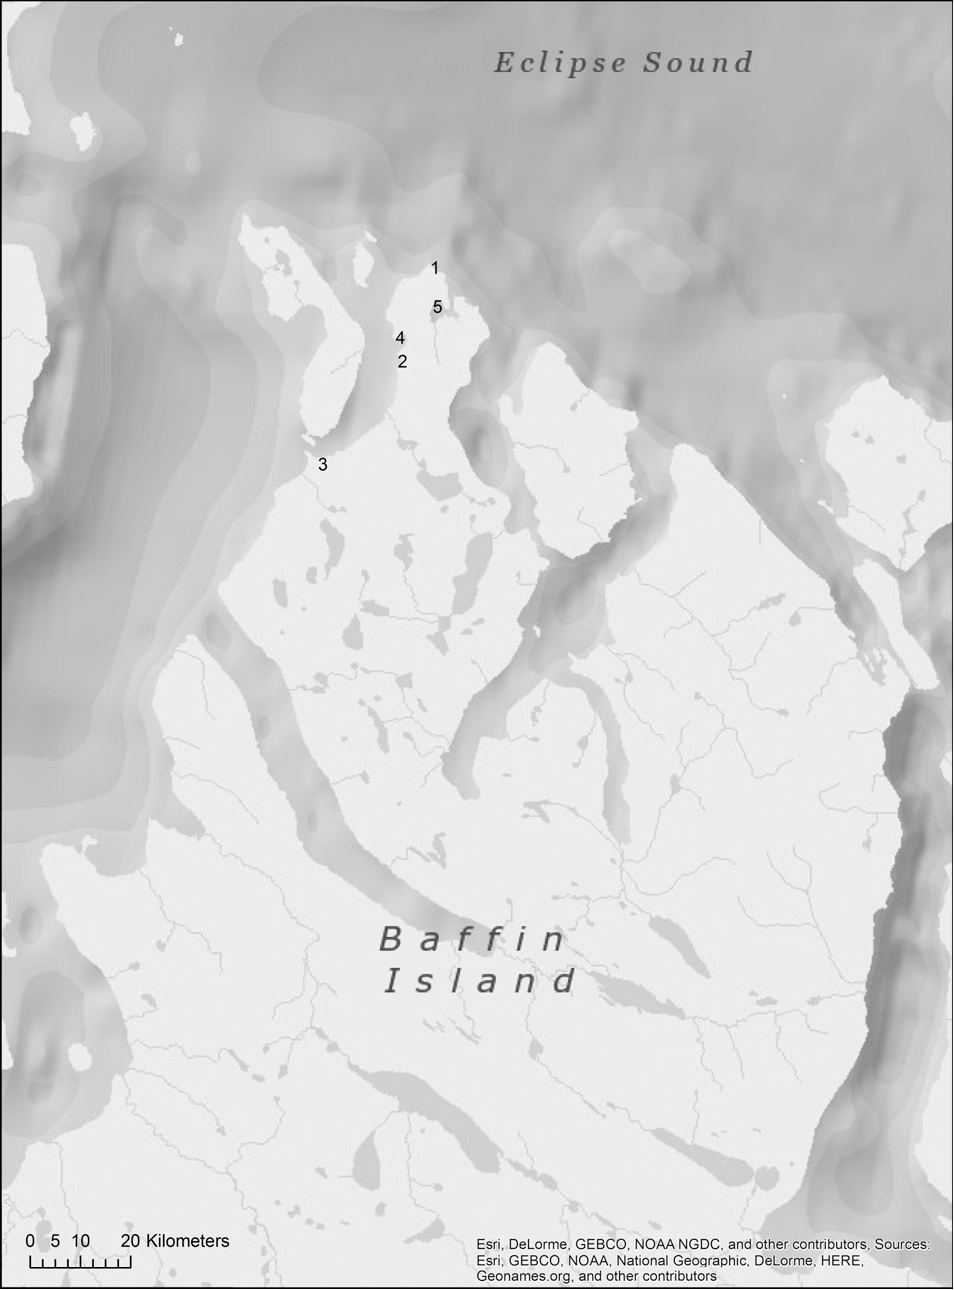 FIG. 1. Study area: (1) Cape Hatt, (2) the outer side of Bay 11/12, (3) the south of Ragged Island, (4) Bay 11/12, (5) Z lagoon.